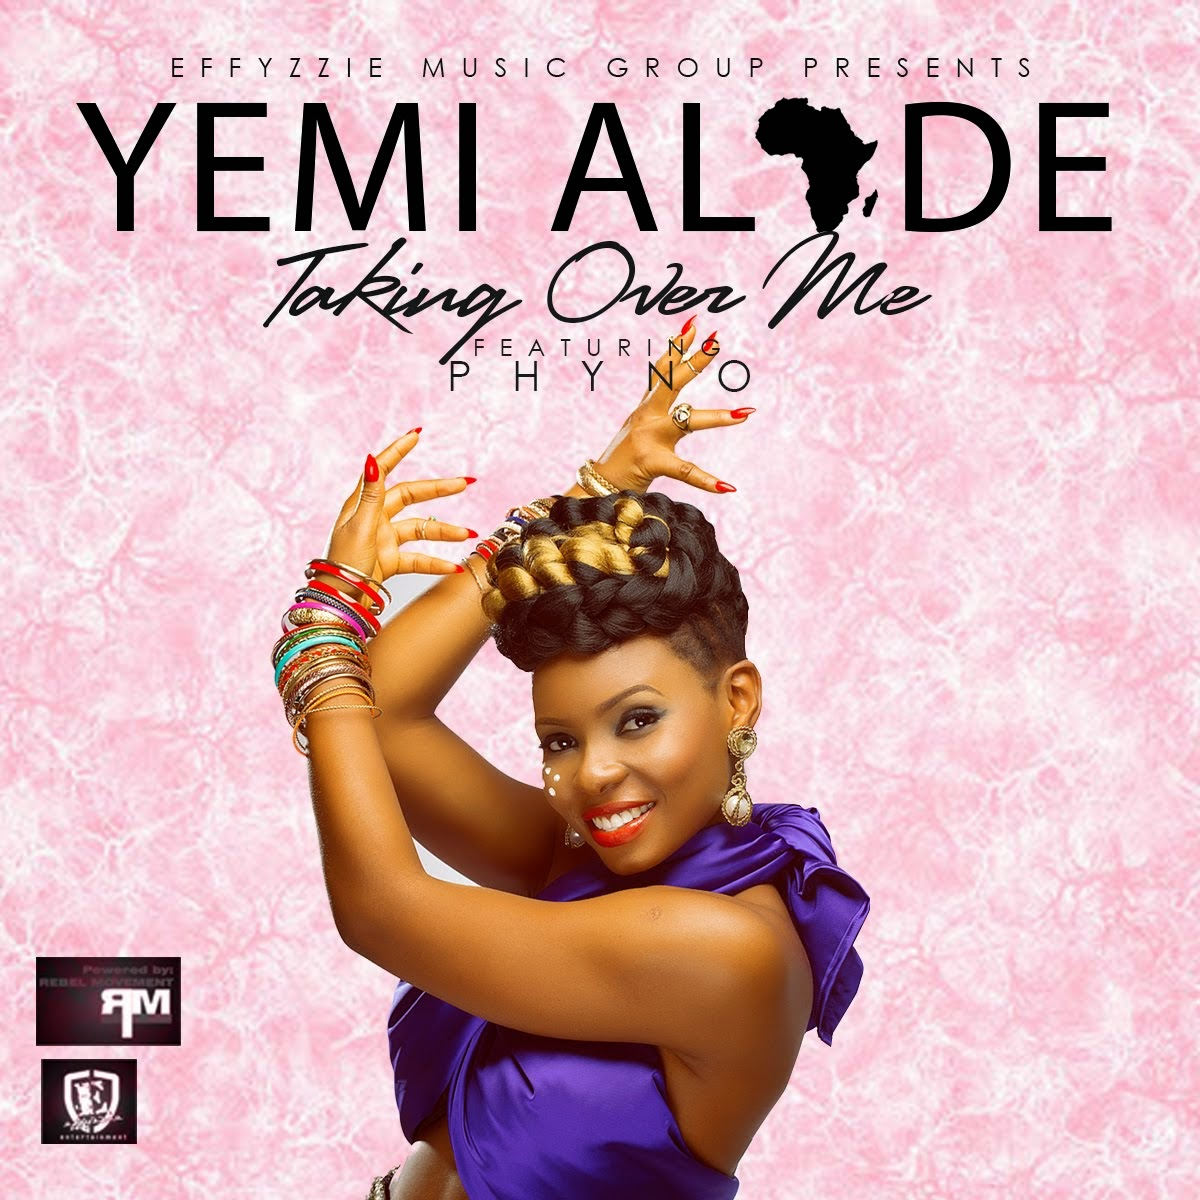 Yemi Alade – Taking Over Me ft. Phyno